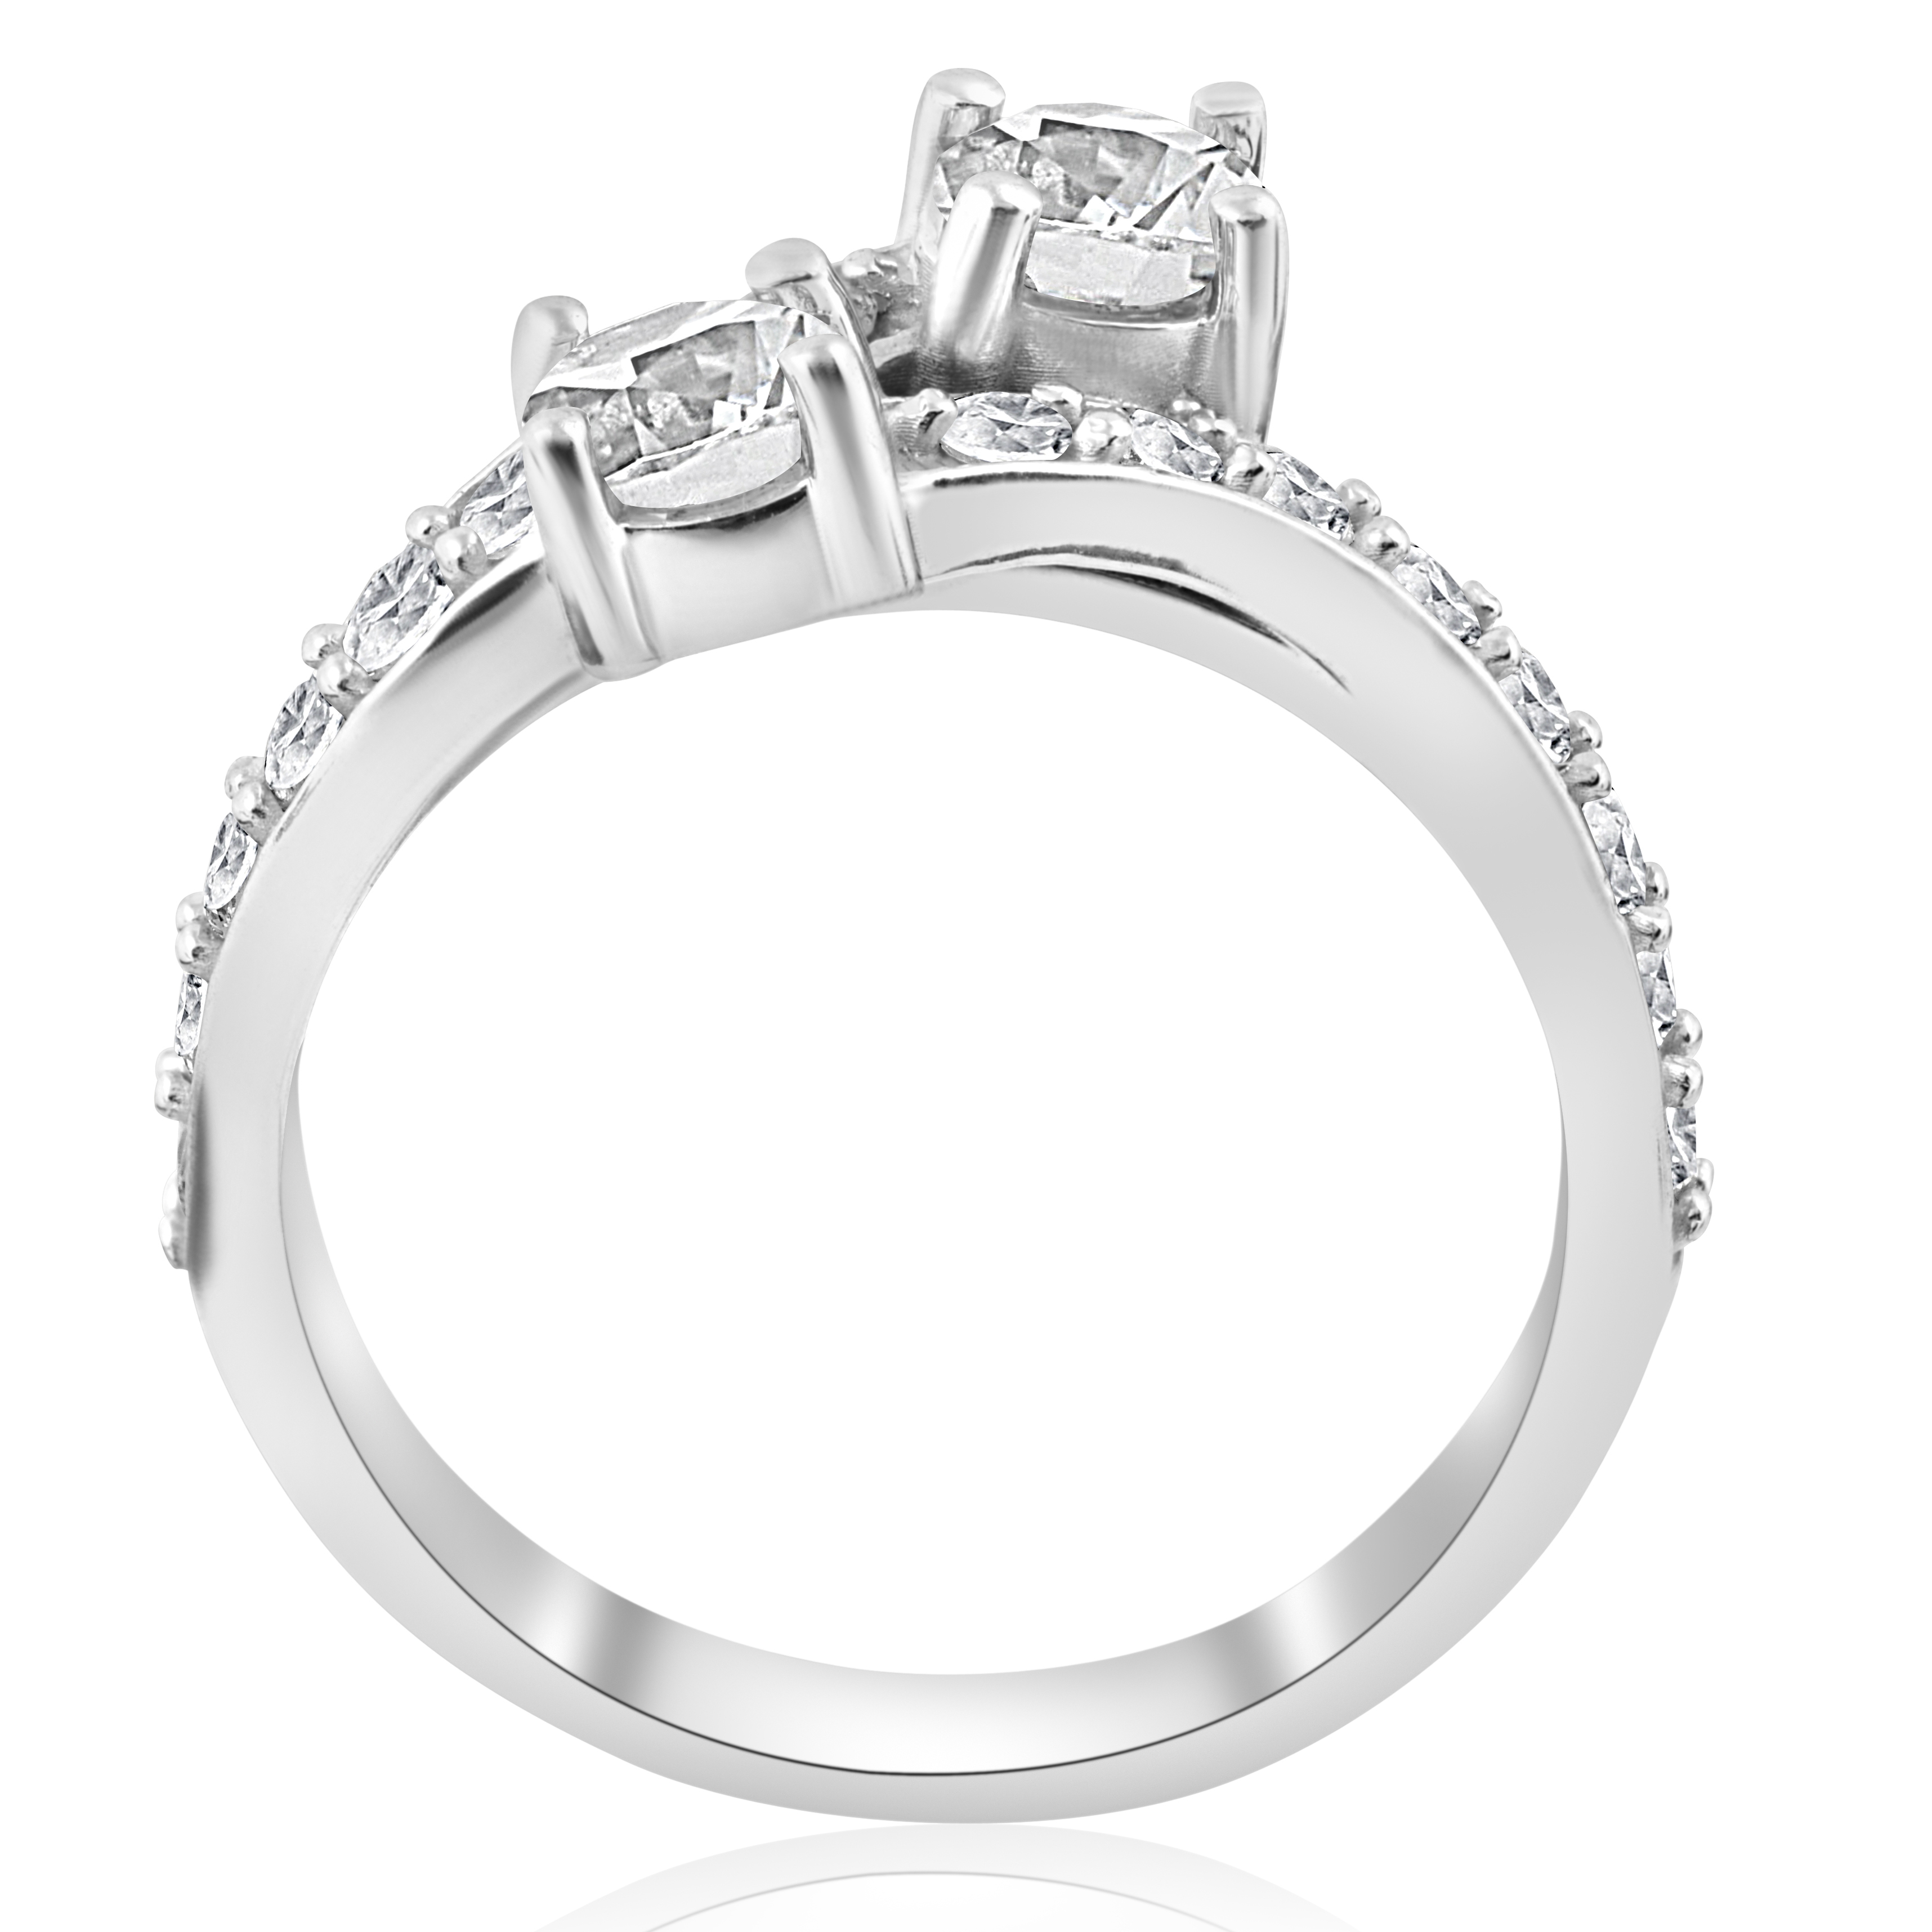 2ct Diamond Forever Us 2 Stone Solitaire Engagement Ring Wedding Set White  Gold